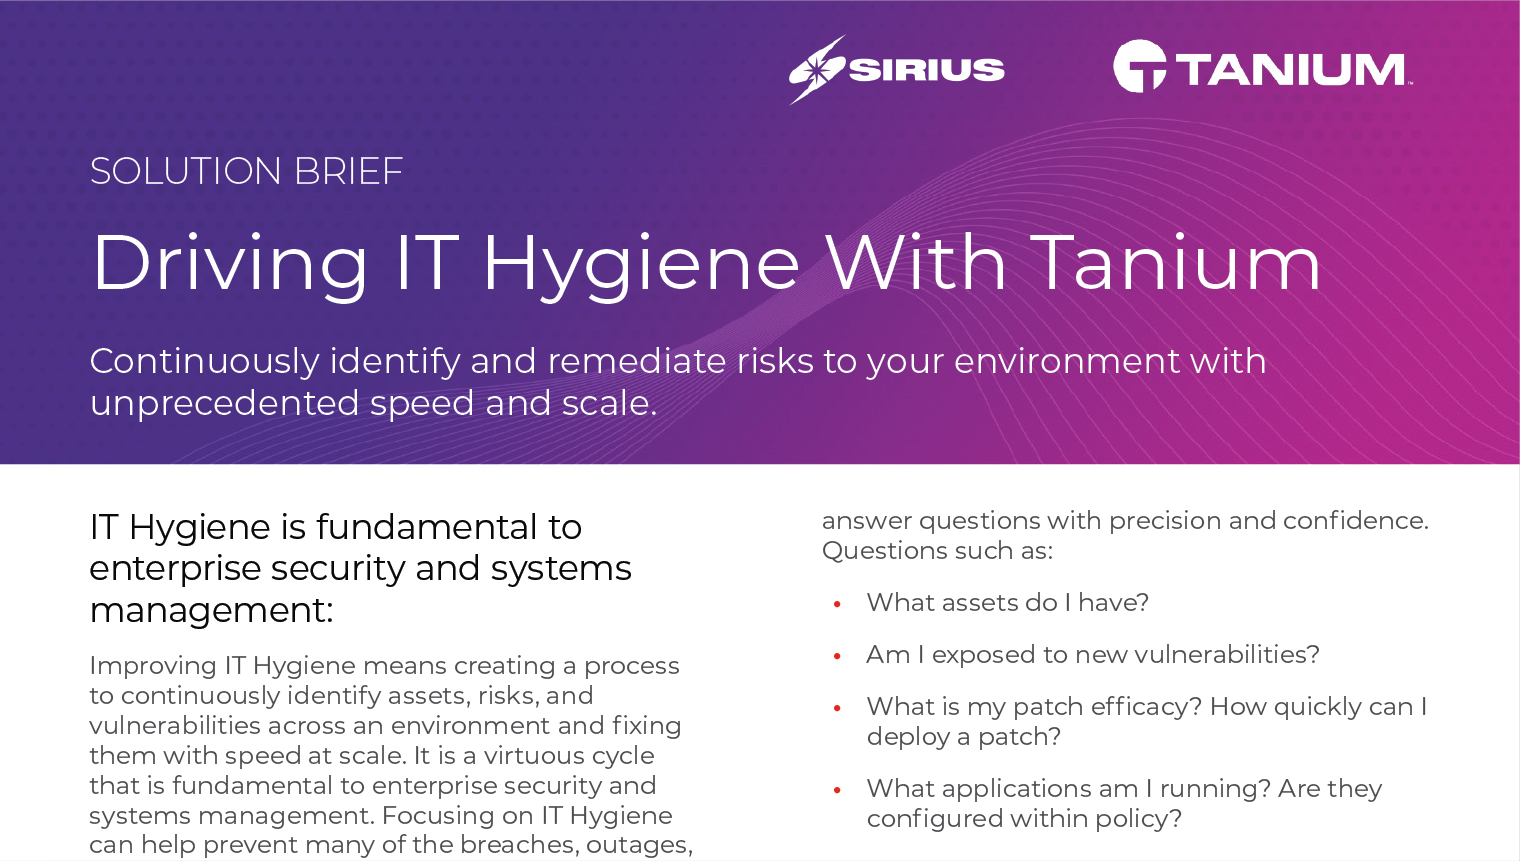 Solution Brief: Driving IT Hygiene With Tanium